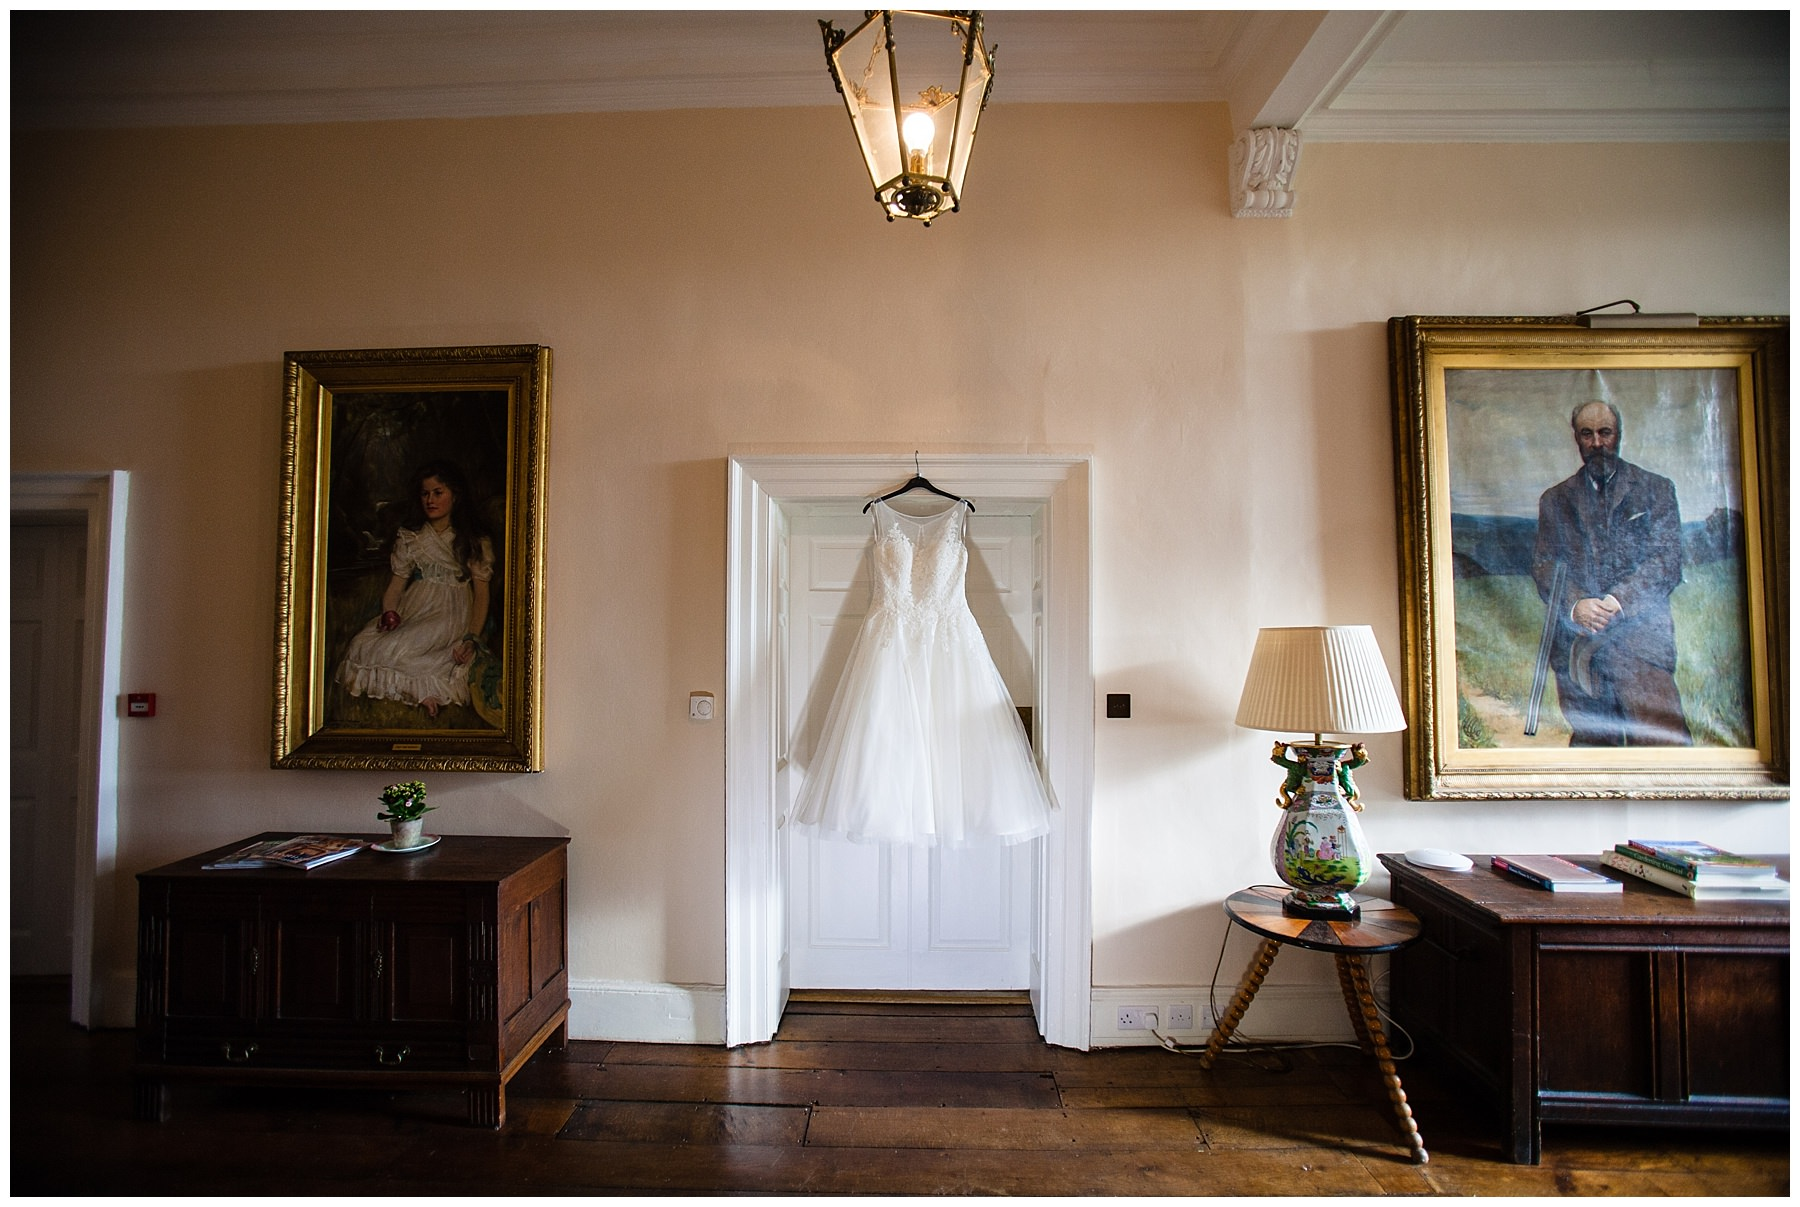 brides wedding dress hanging outside the bridal suite surround by the interior decor of paintings and lamps at iscoyd park